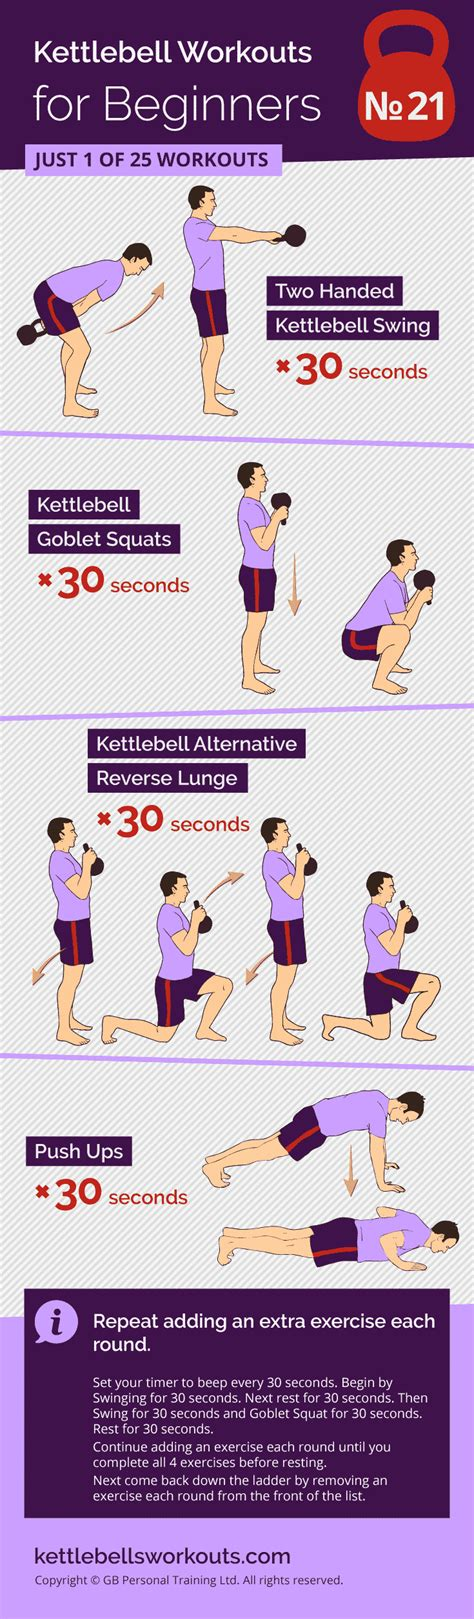 kettlebell ladder workout movement exercises workouts beginners squat handed